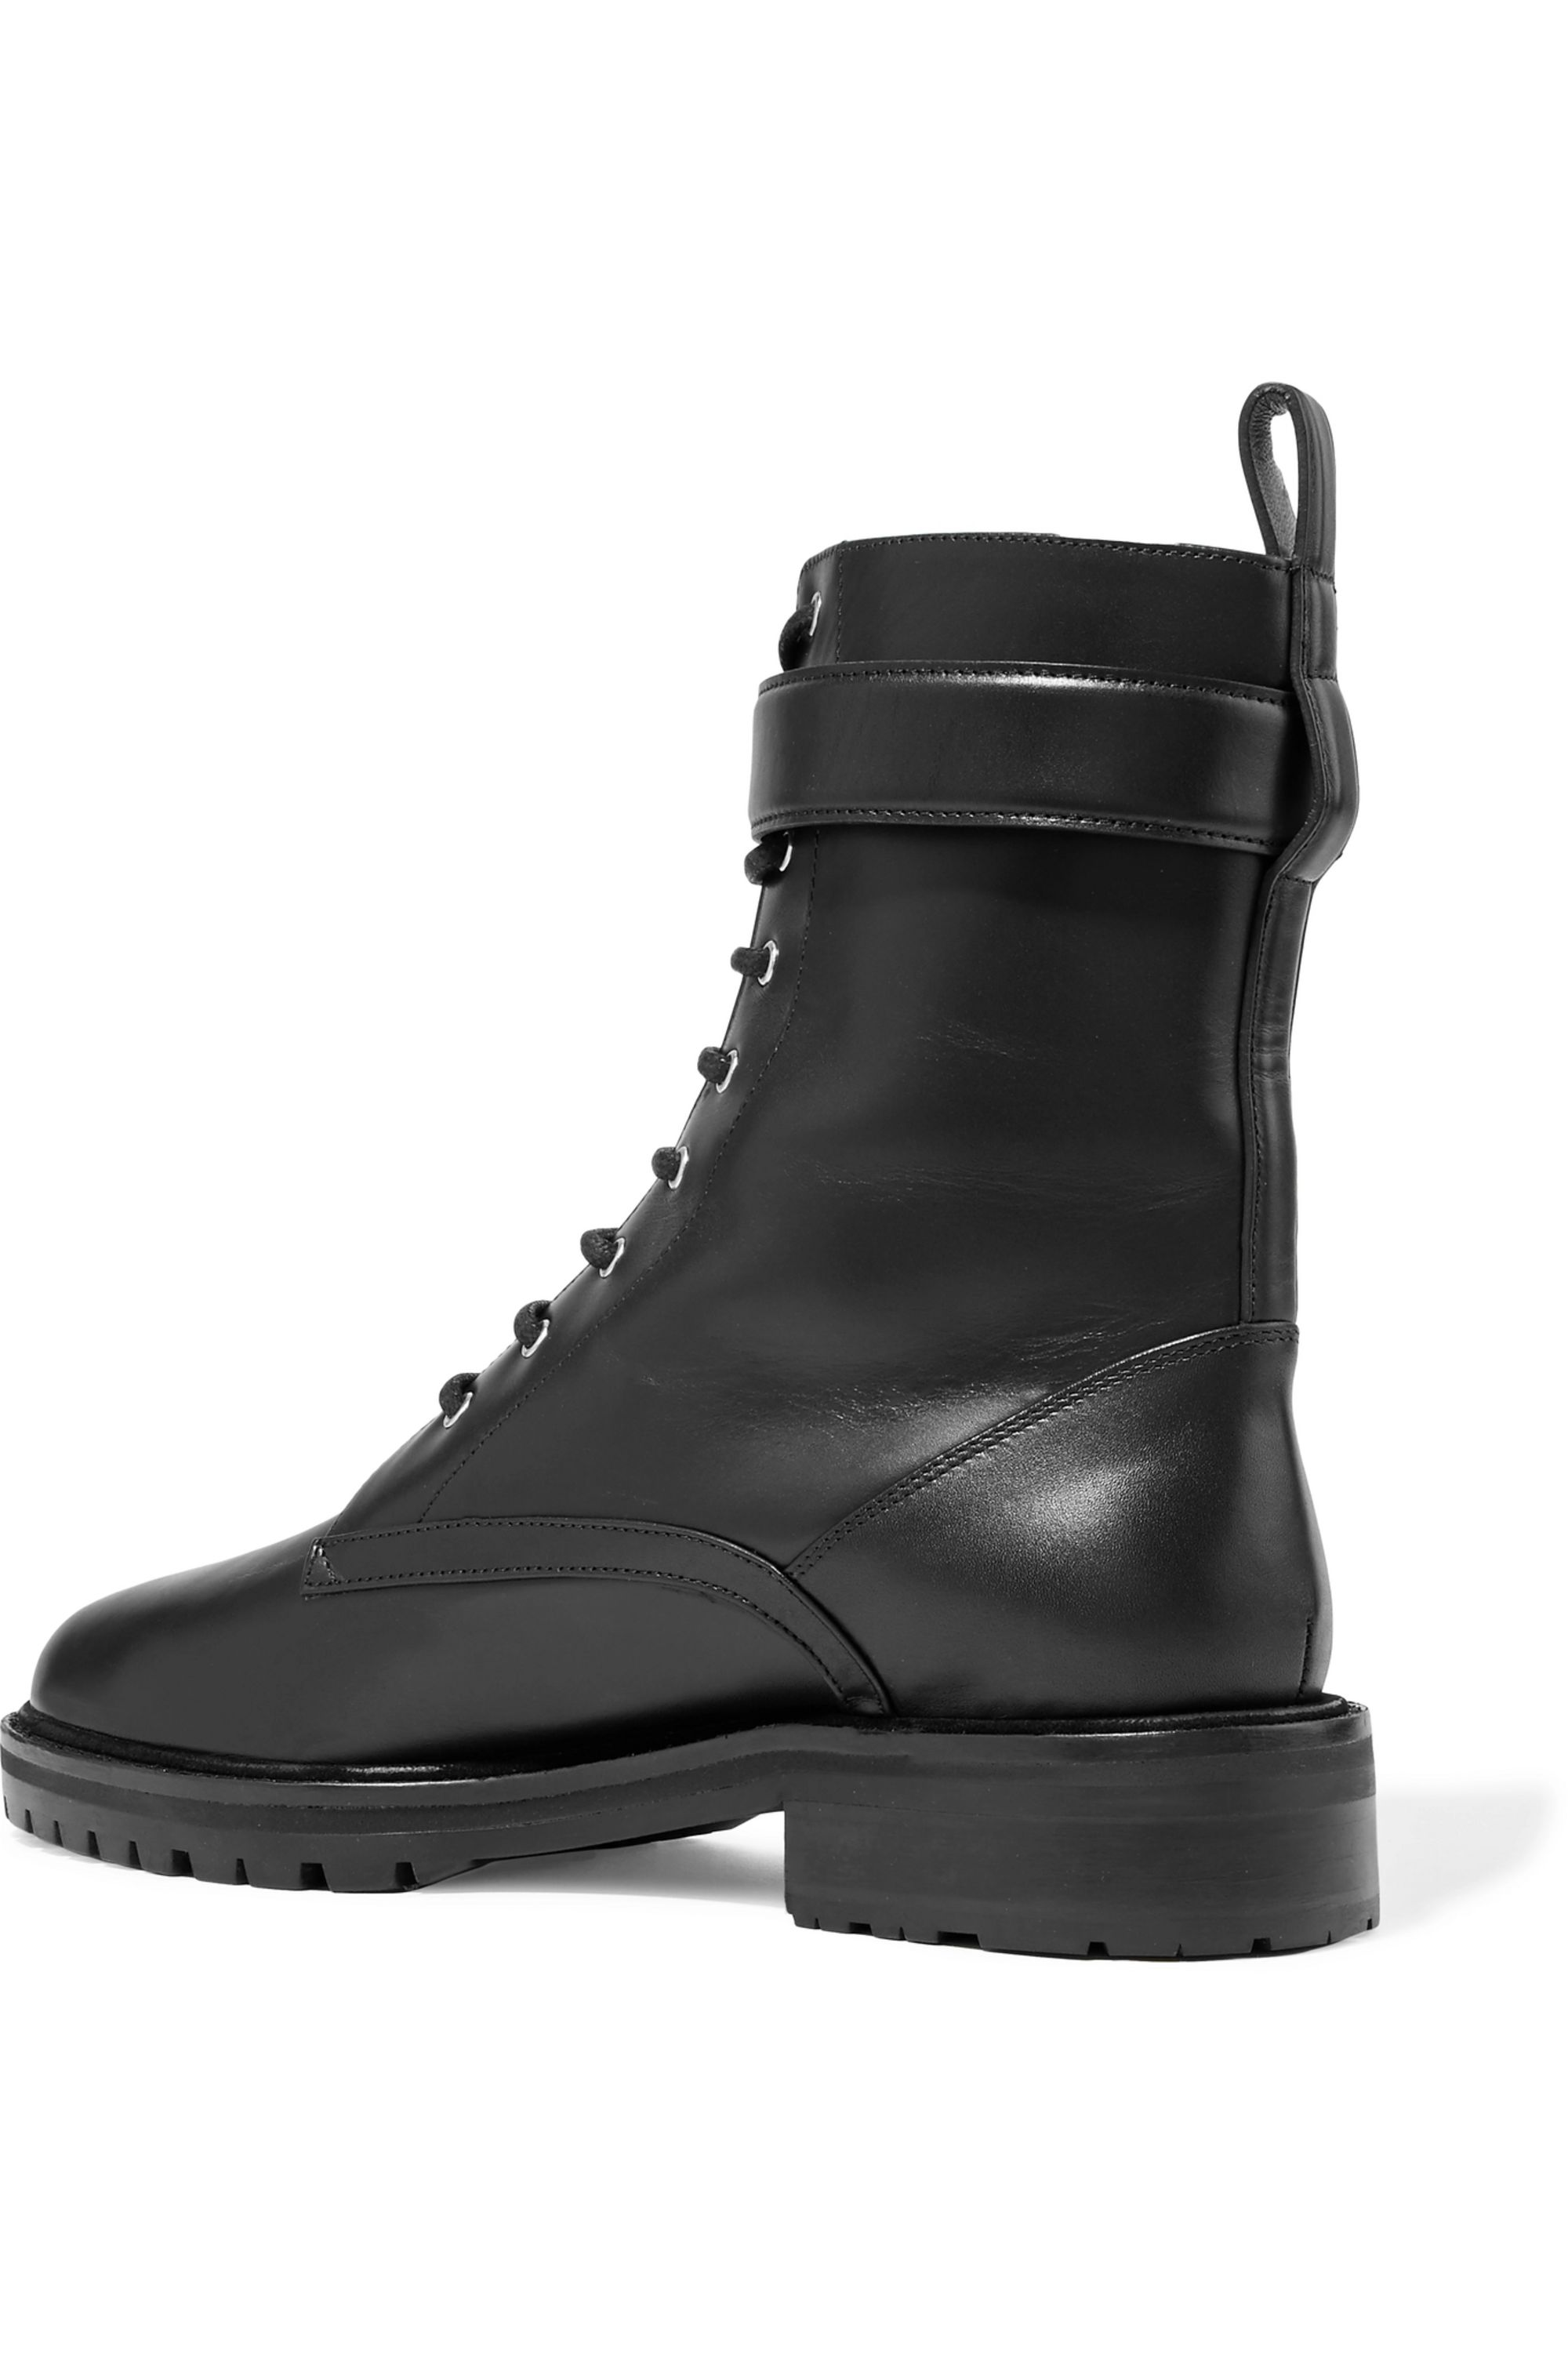 Black Max leather ankle boots   Tabitha